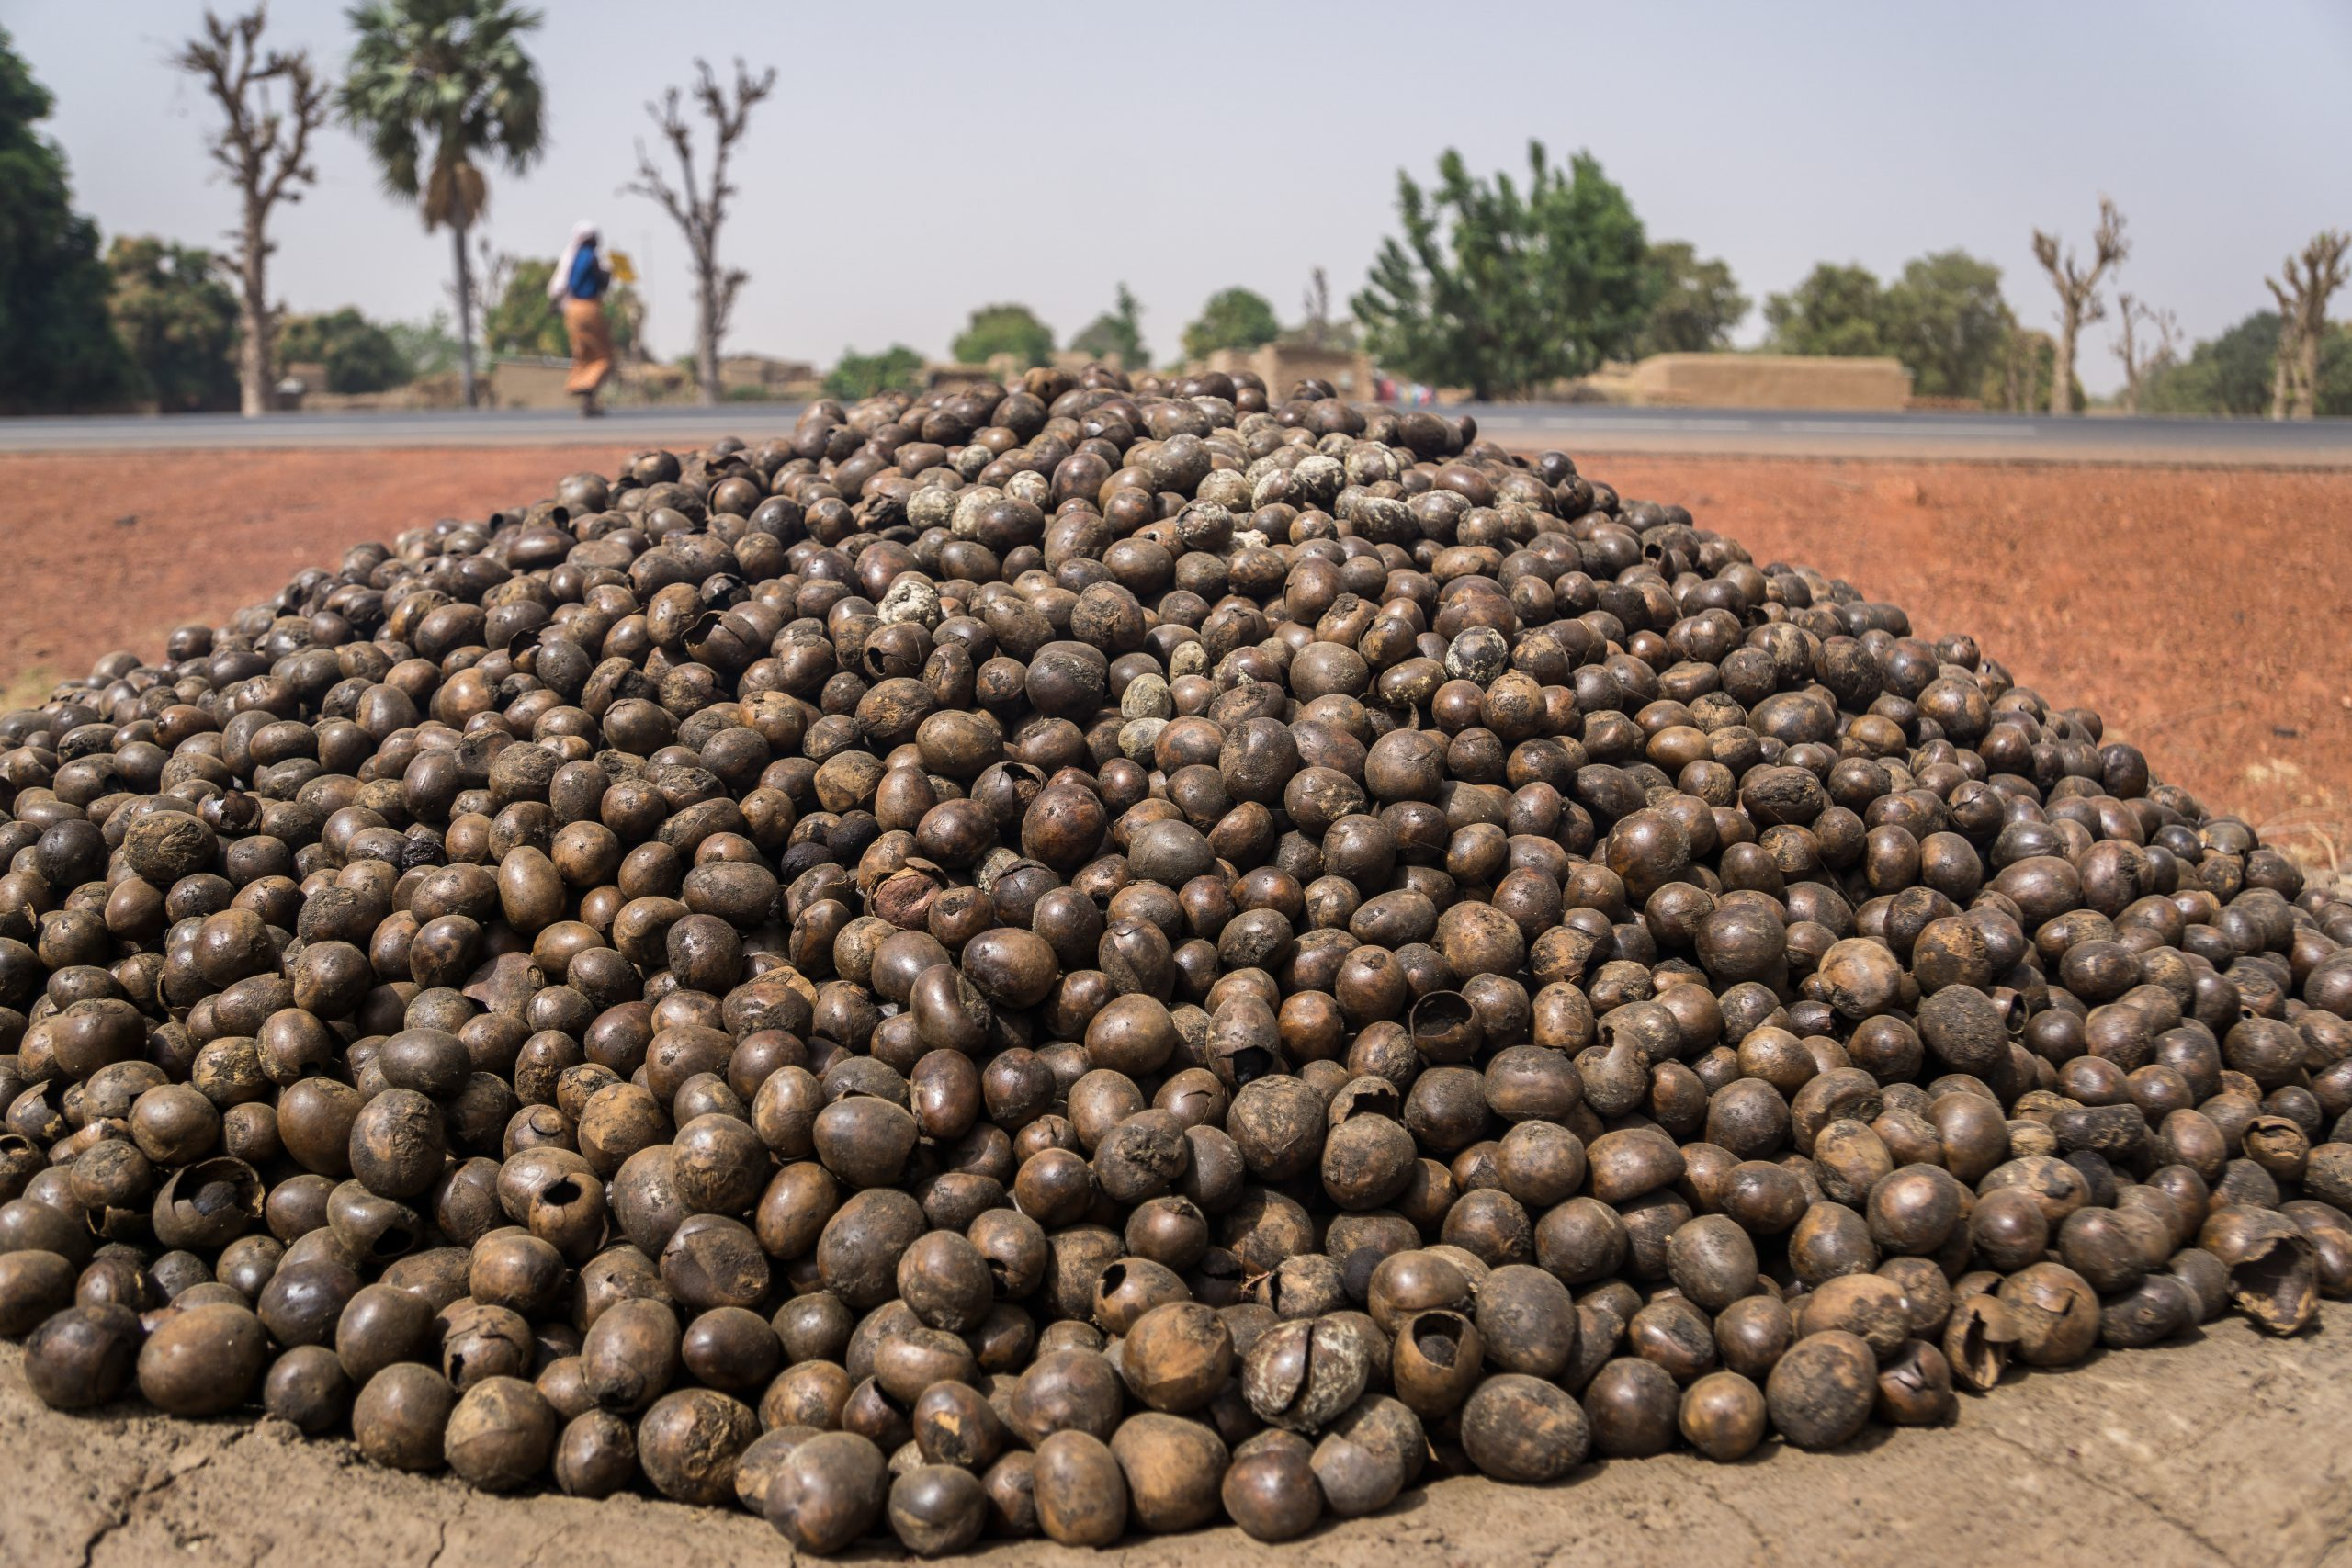 Pile of shea nuts being roasted